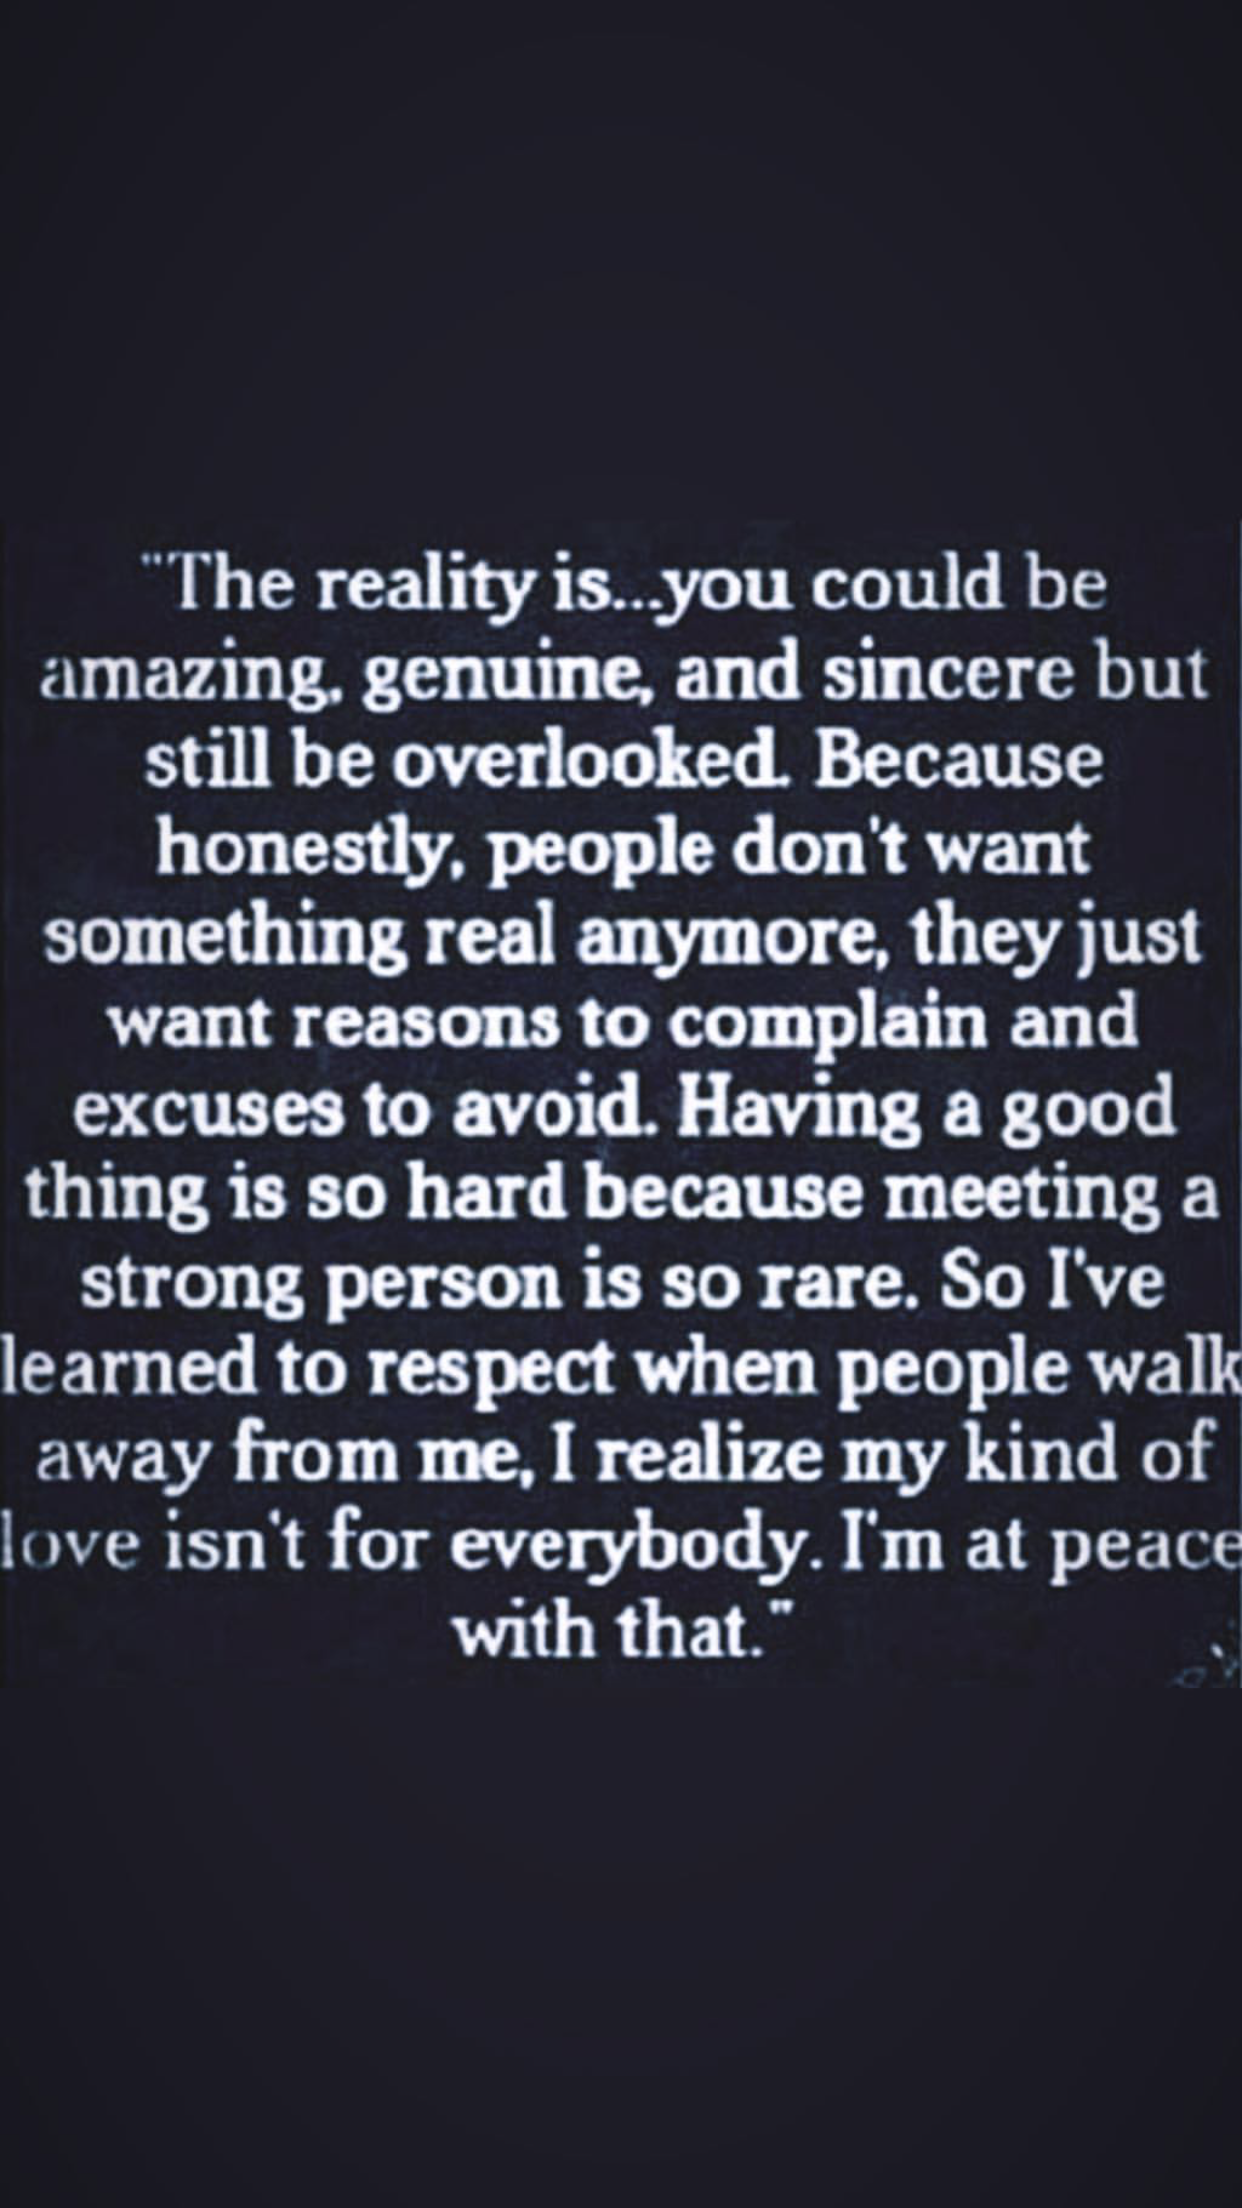 Pin By Rylie F On Memes True Love Reality Connection